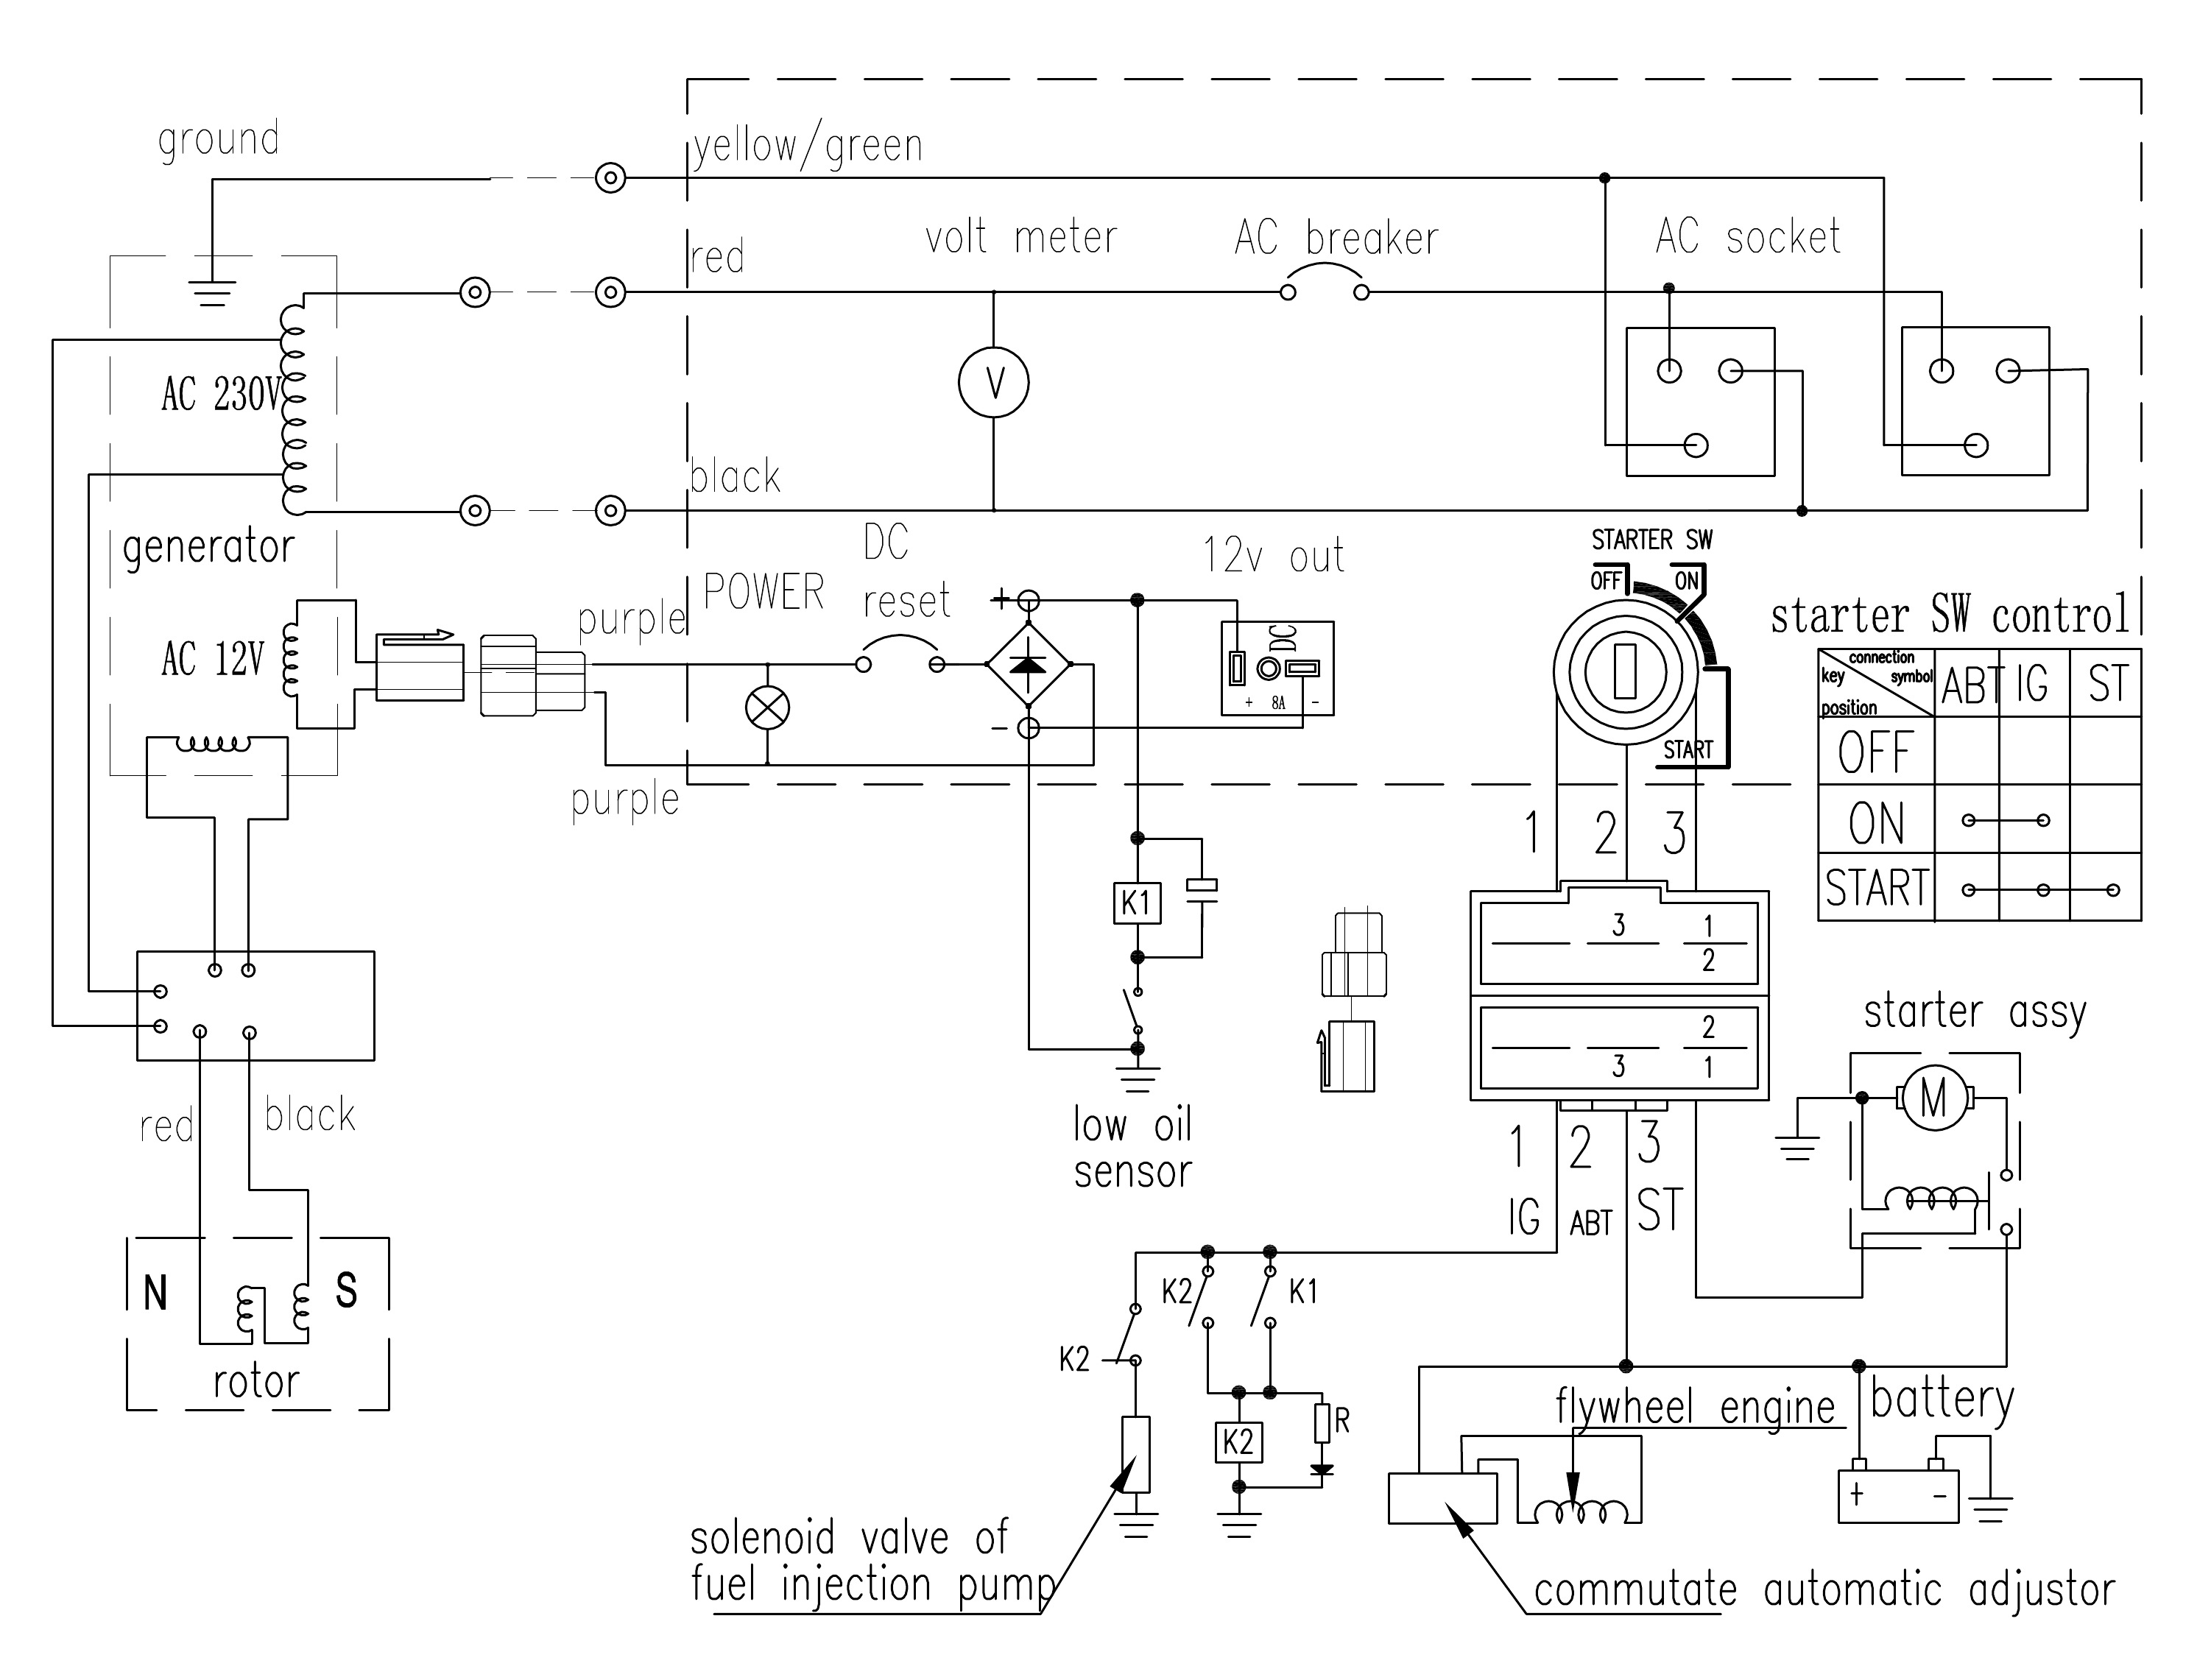 230v generator wiring diagram what is the definition of a sip 04921 medusa tds6001